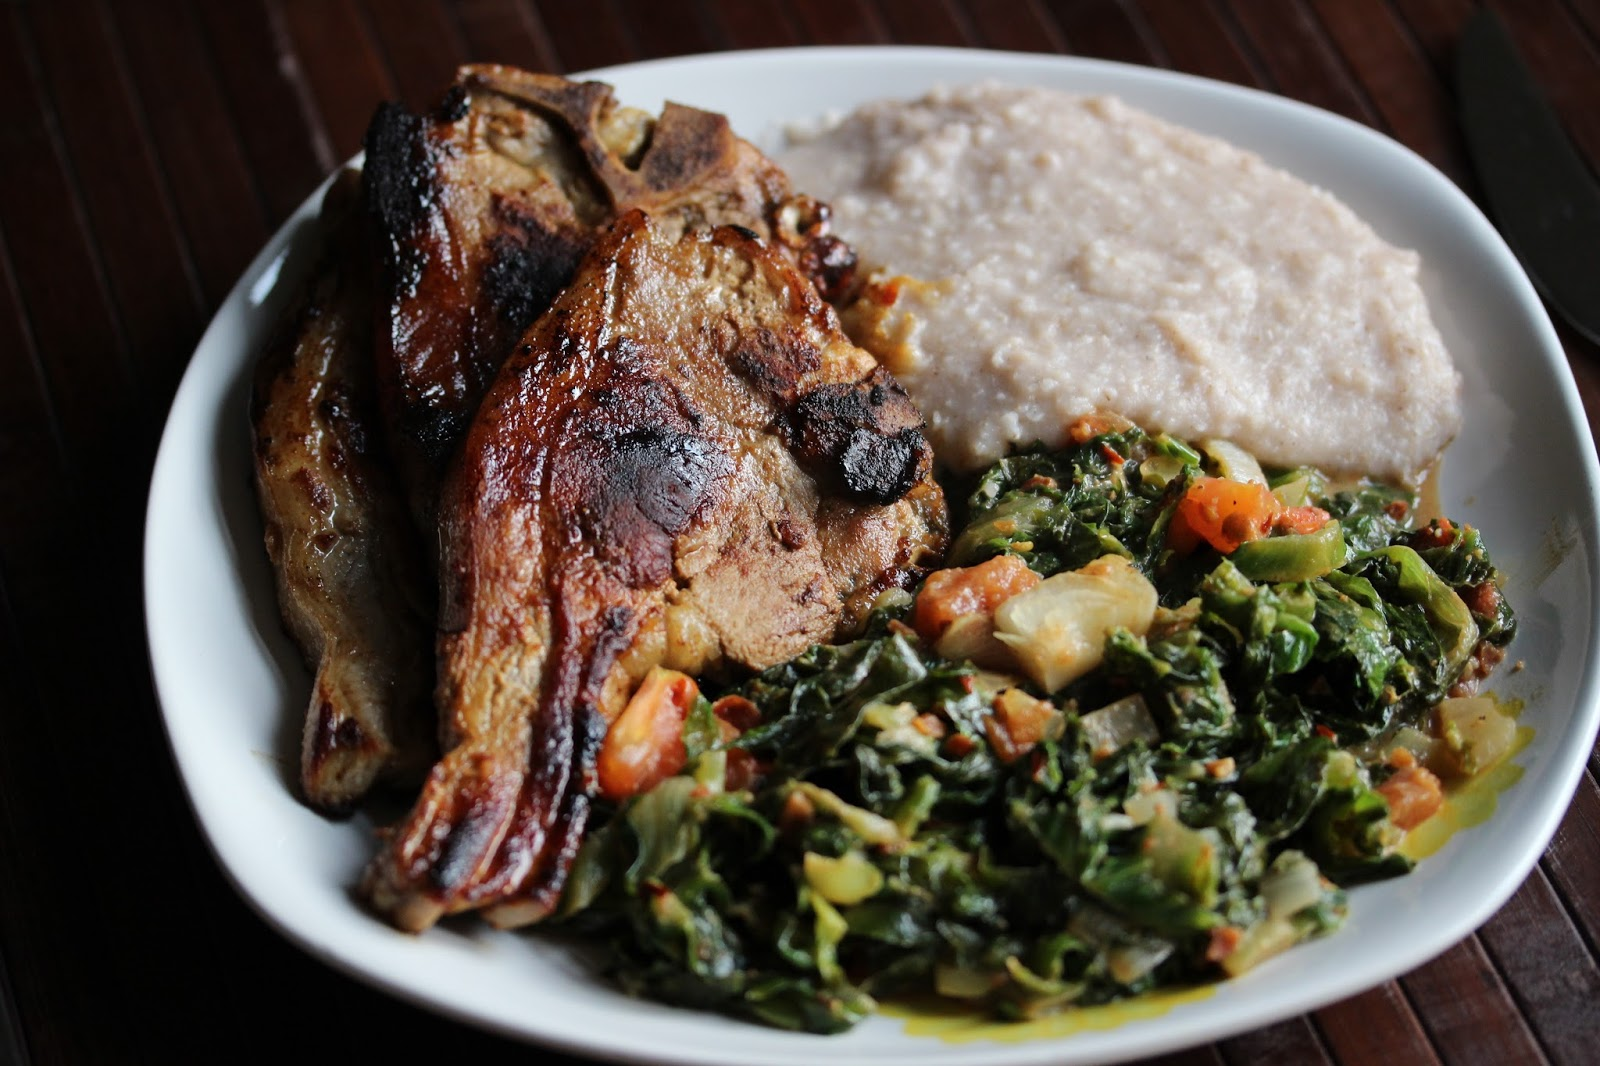 Raffis world day 197 zimbabwe and muriwo unedovi with sadza and nyama if you want to add meat just grill or fry some beef chicken or lamb without adding anything and serve with the rest i used some lamb chops and fried them forumfinder Choice Image